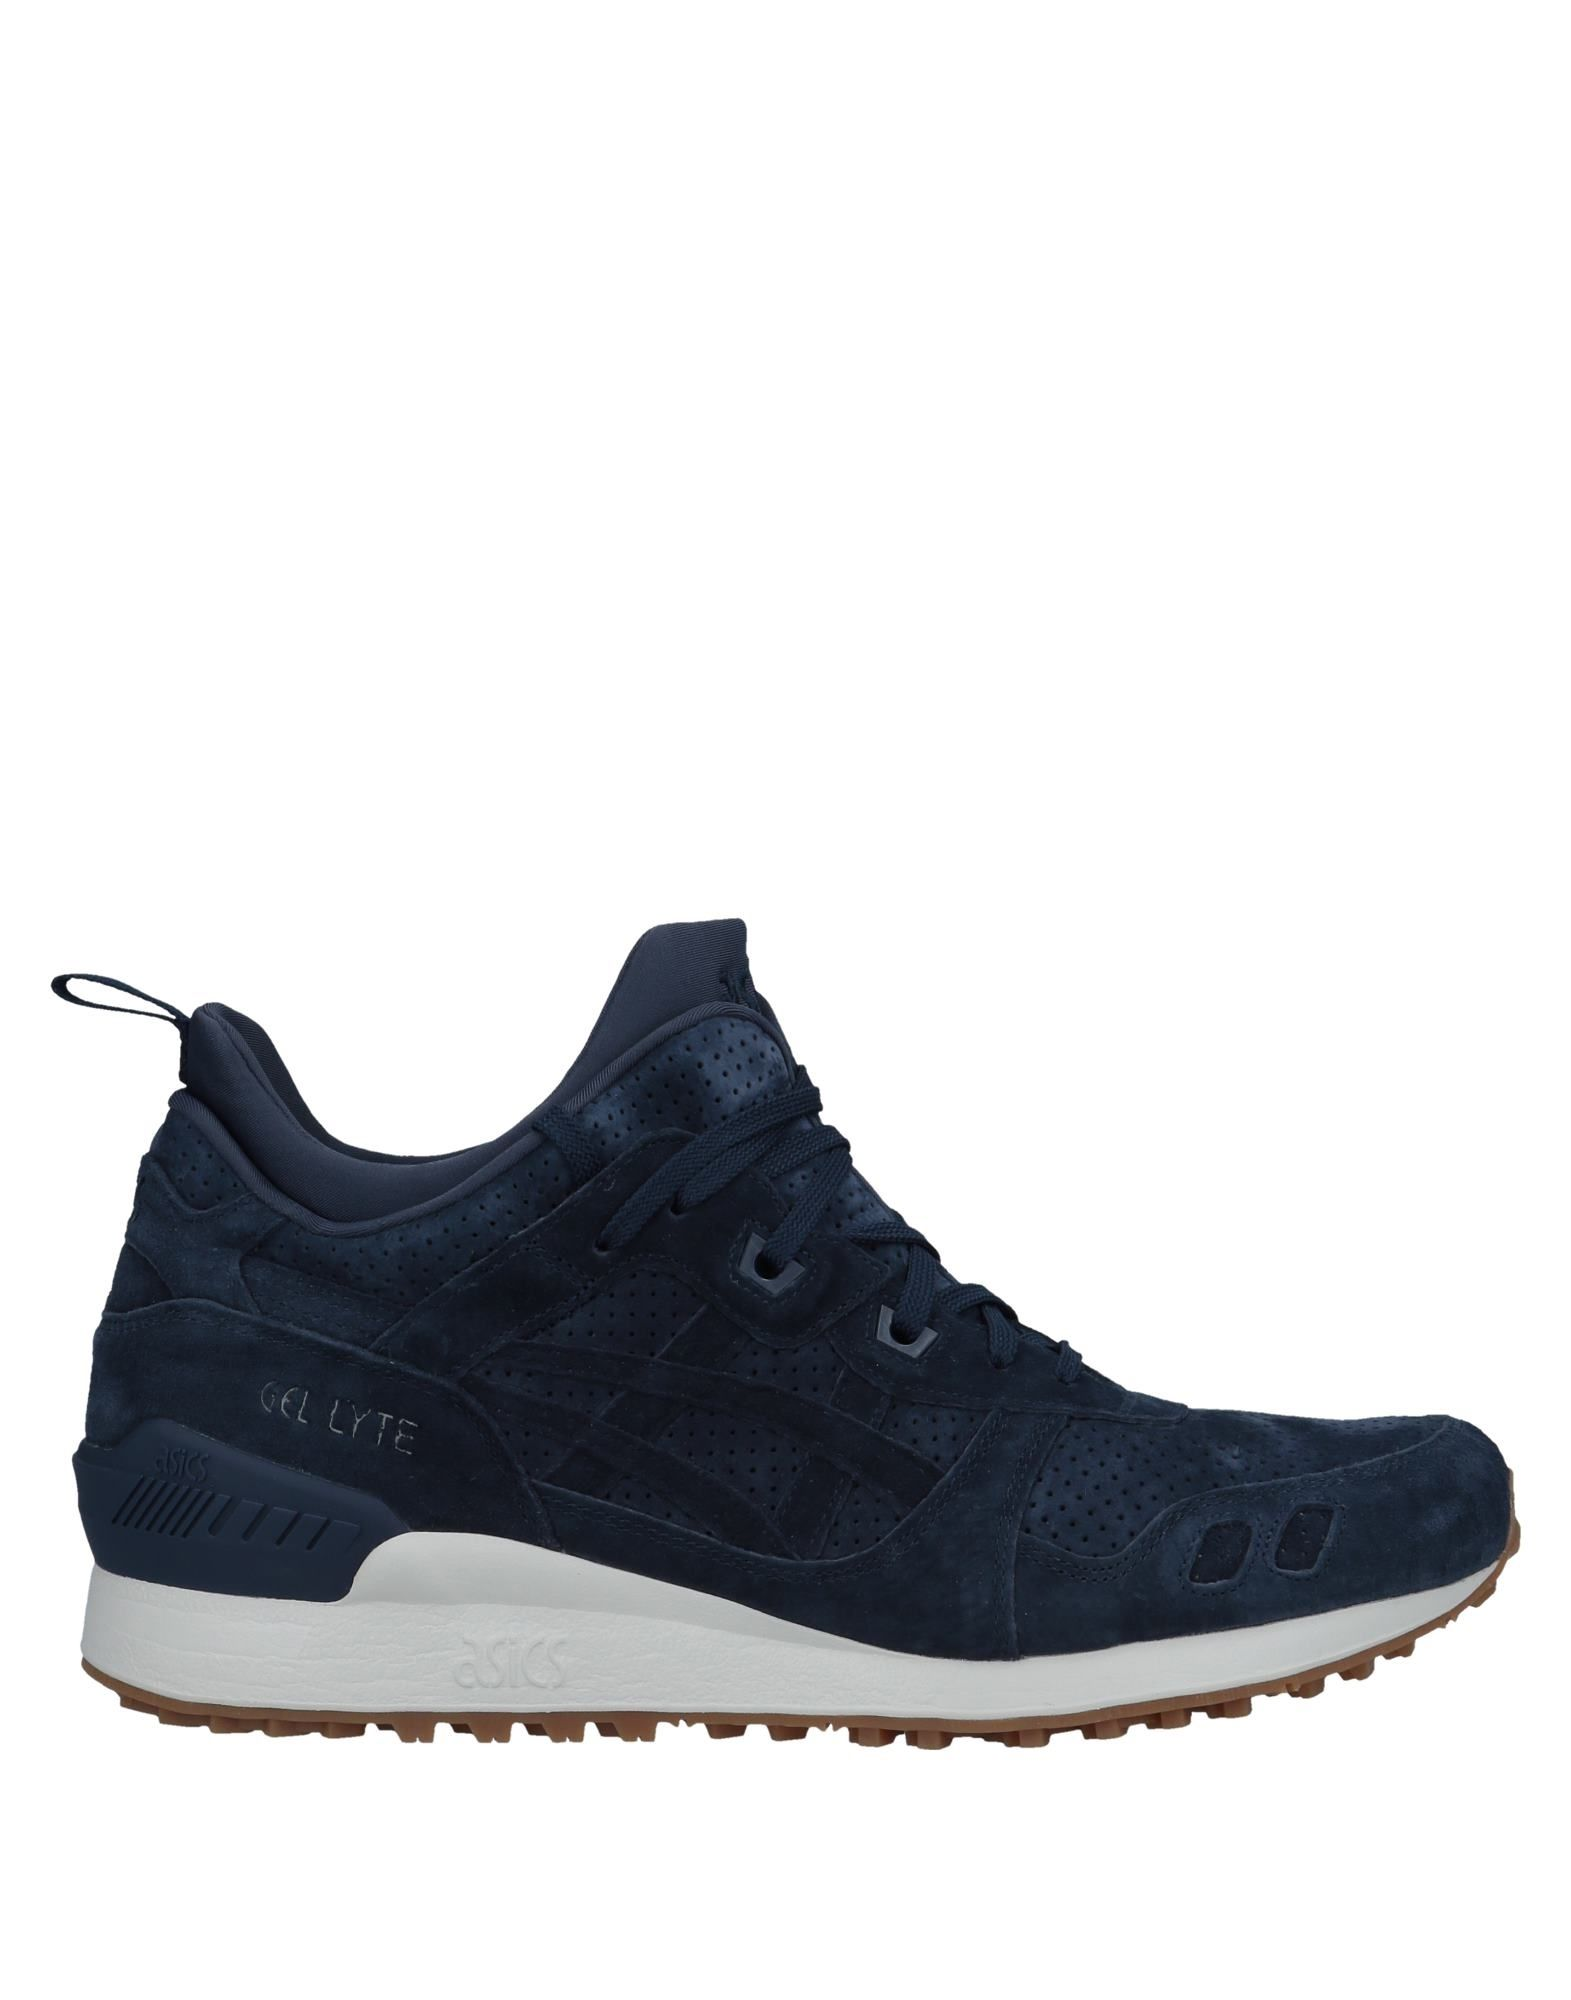 ASICS | ASICS High-tops & sneakers 11546631 | Goxip